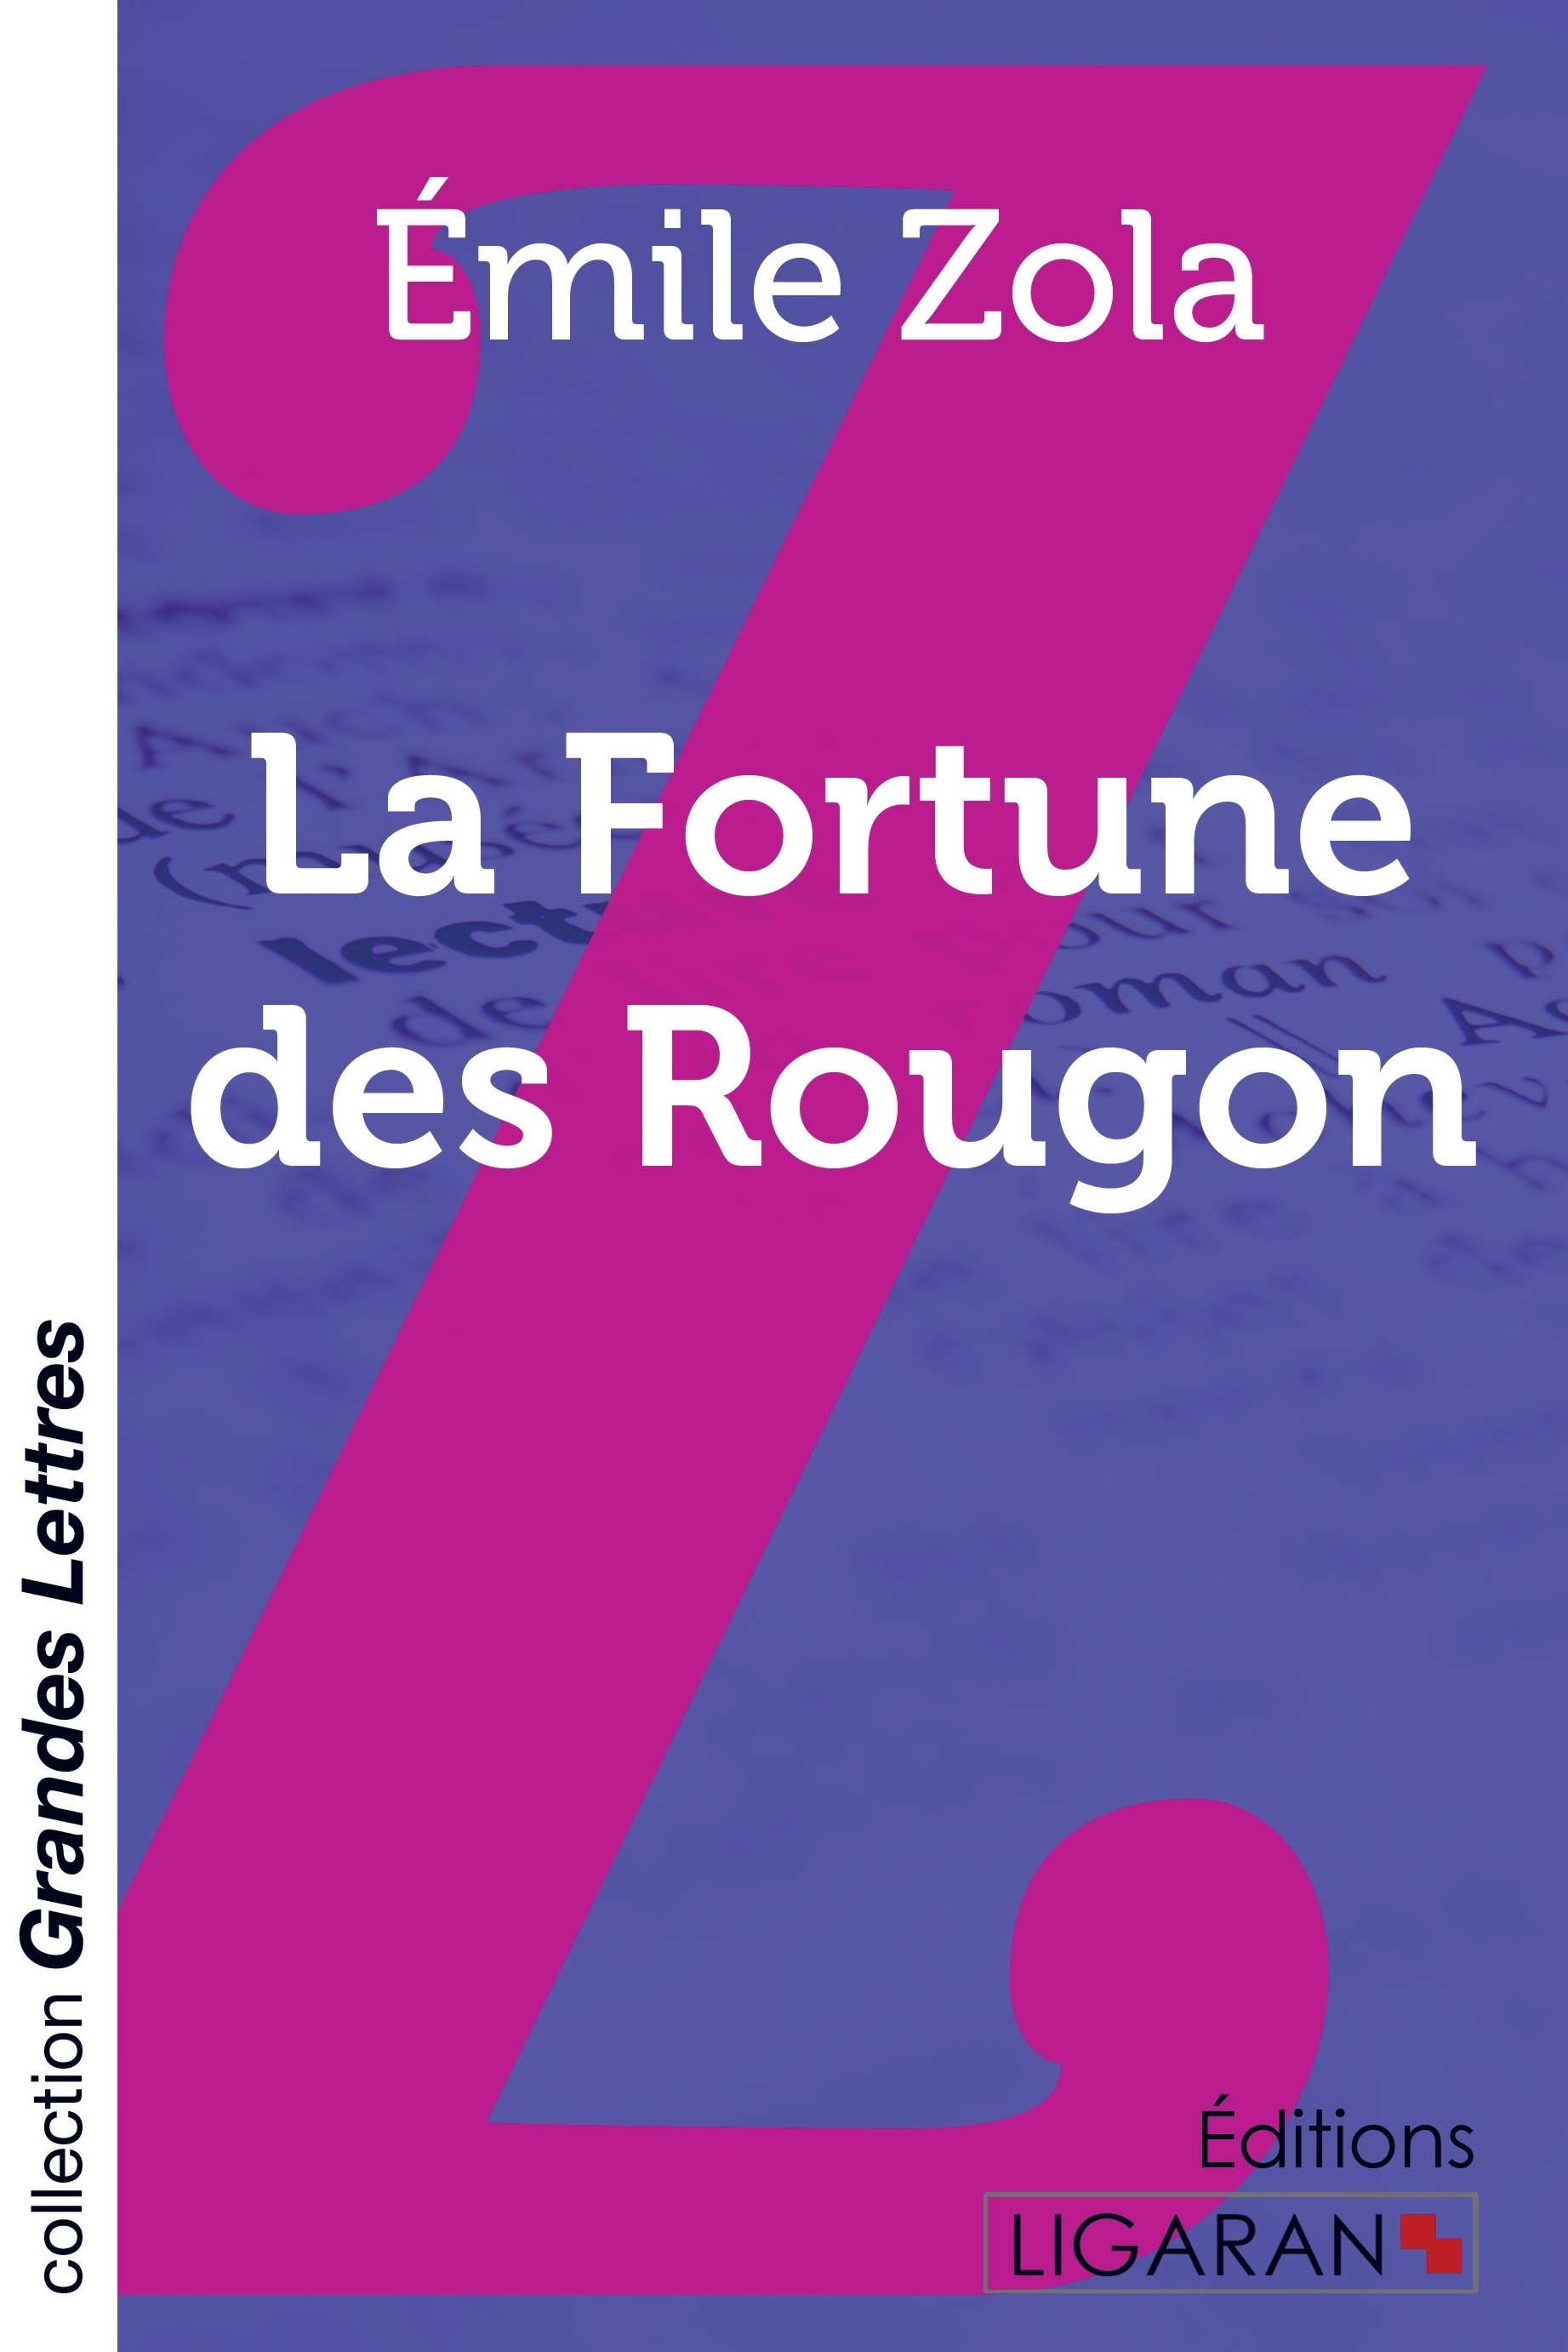 LA FORTUNE DES ROUGON GRANDS CARACTERES